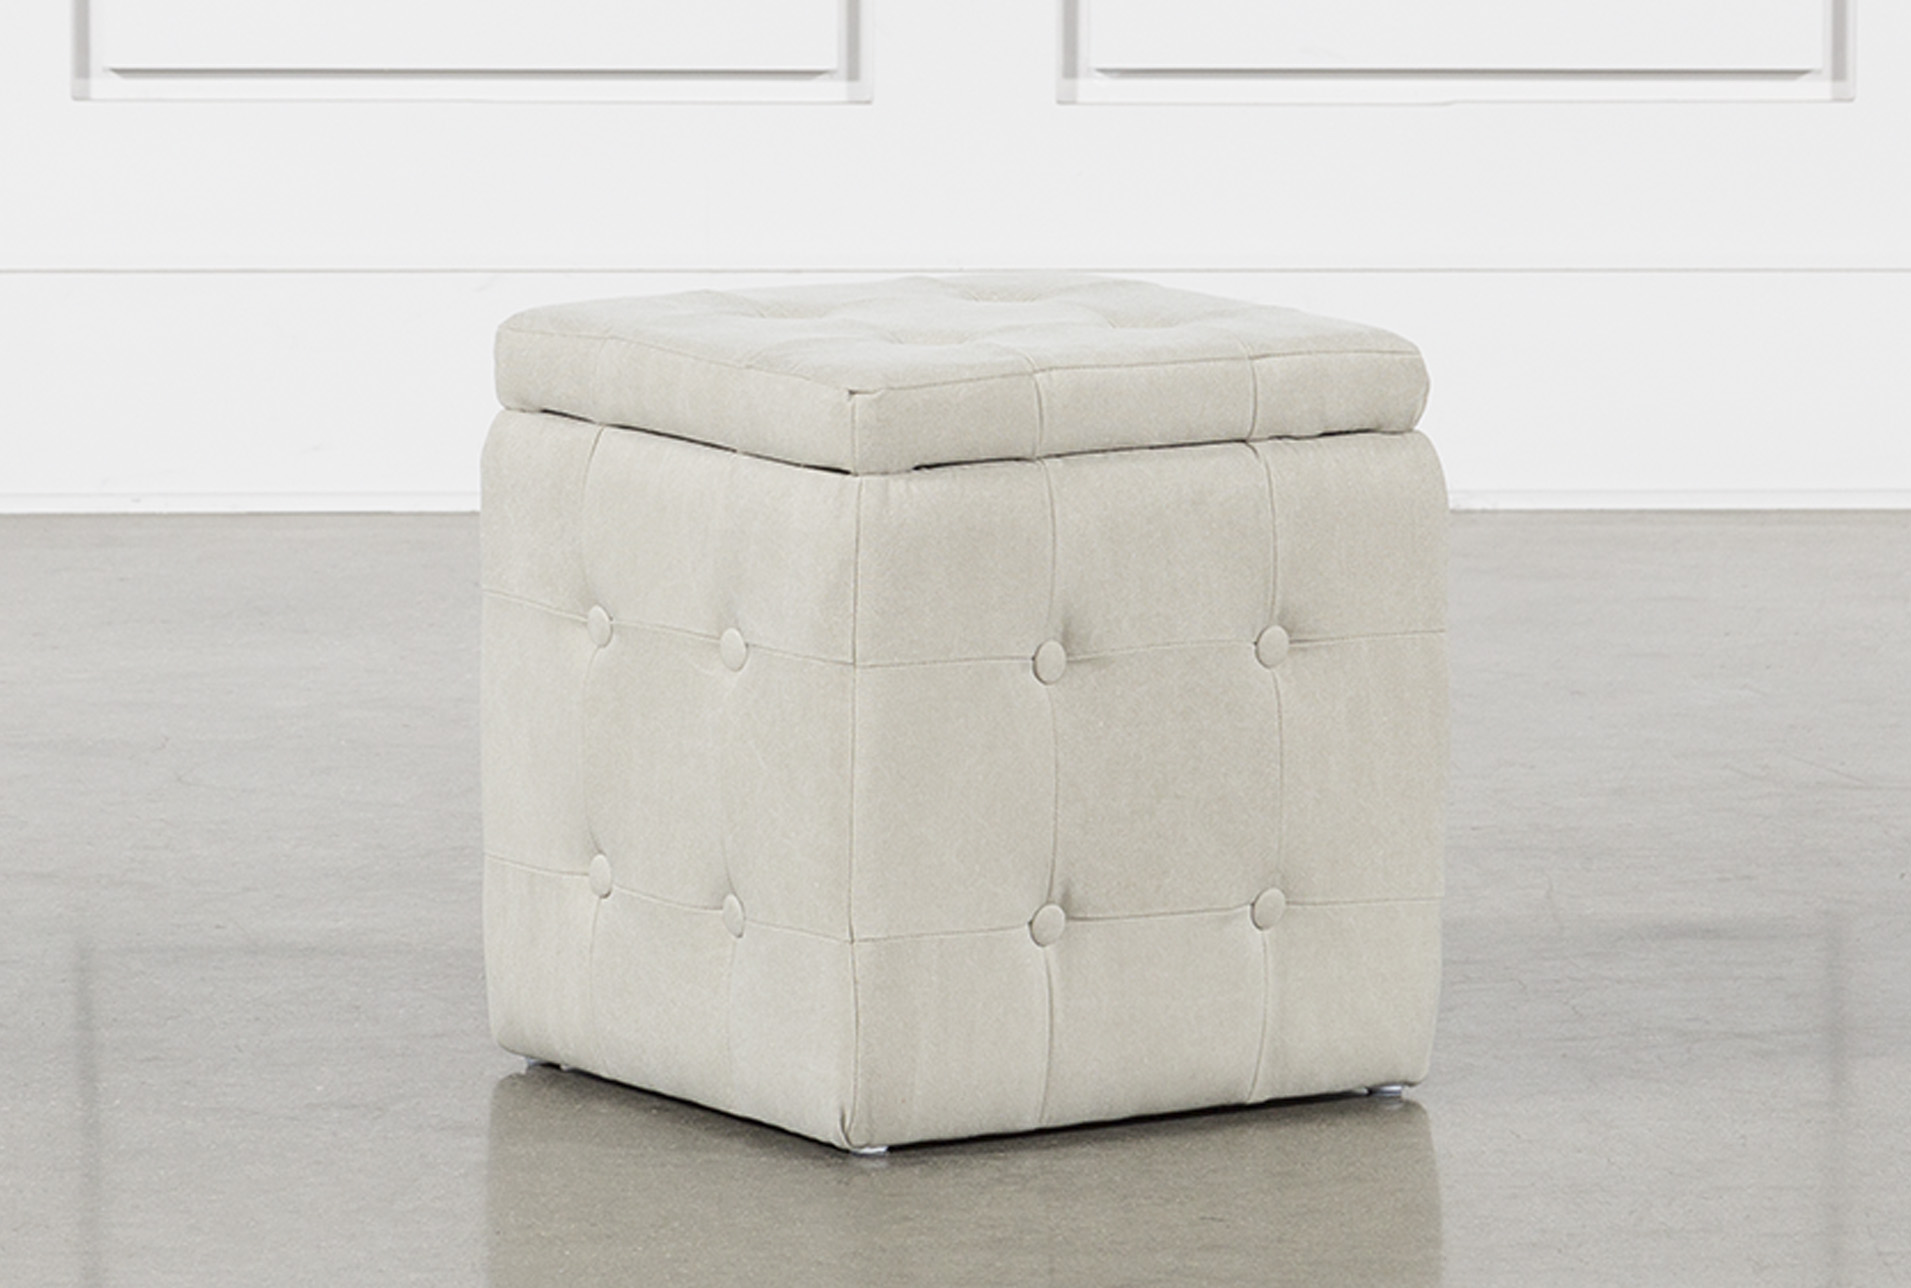 Merveilleux 2 Piece Set Cream Upholstered Storage Cube (Qty: 1) Has Been Successfully  Added To Your Cart.